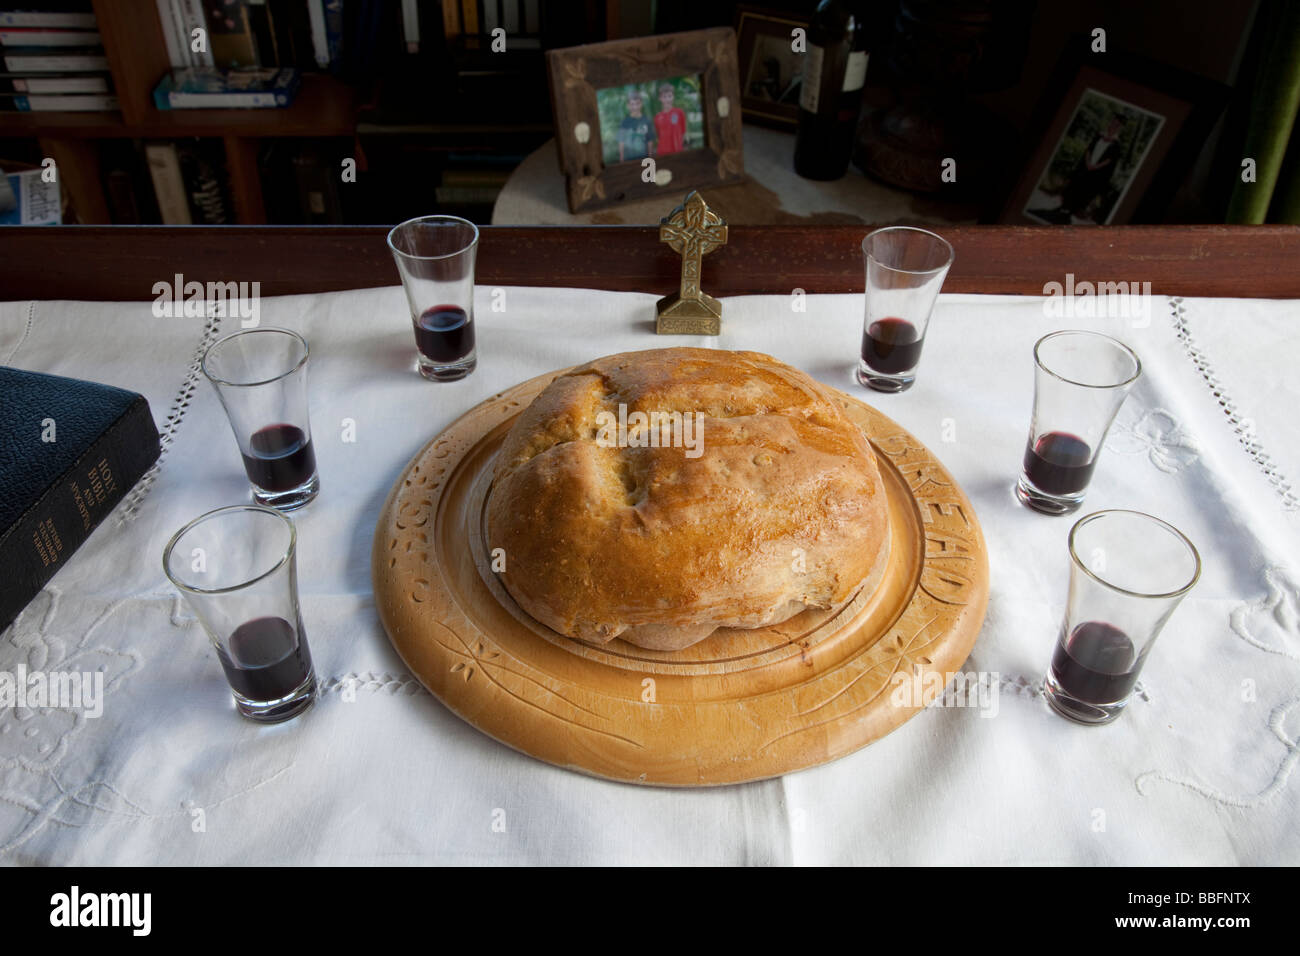 communion table stock photos & communion table stock images - alamy